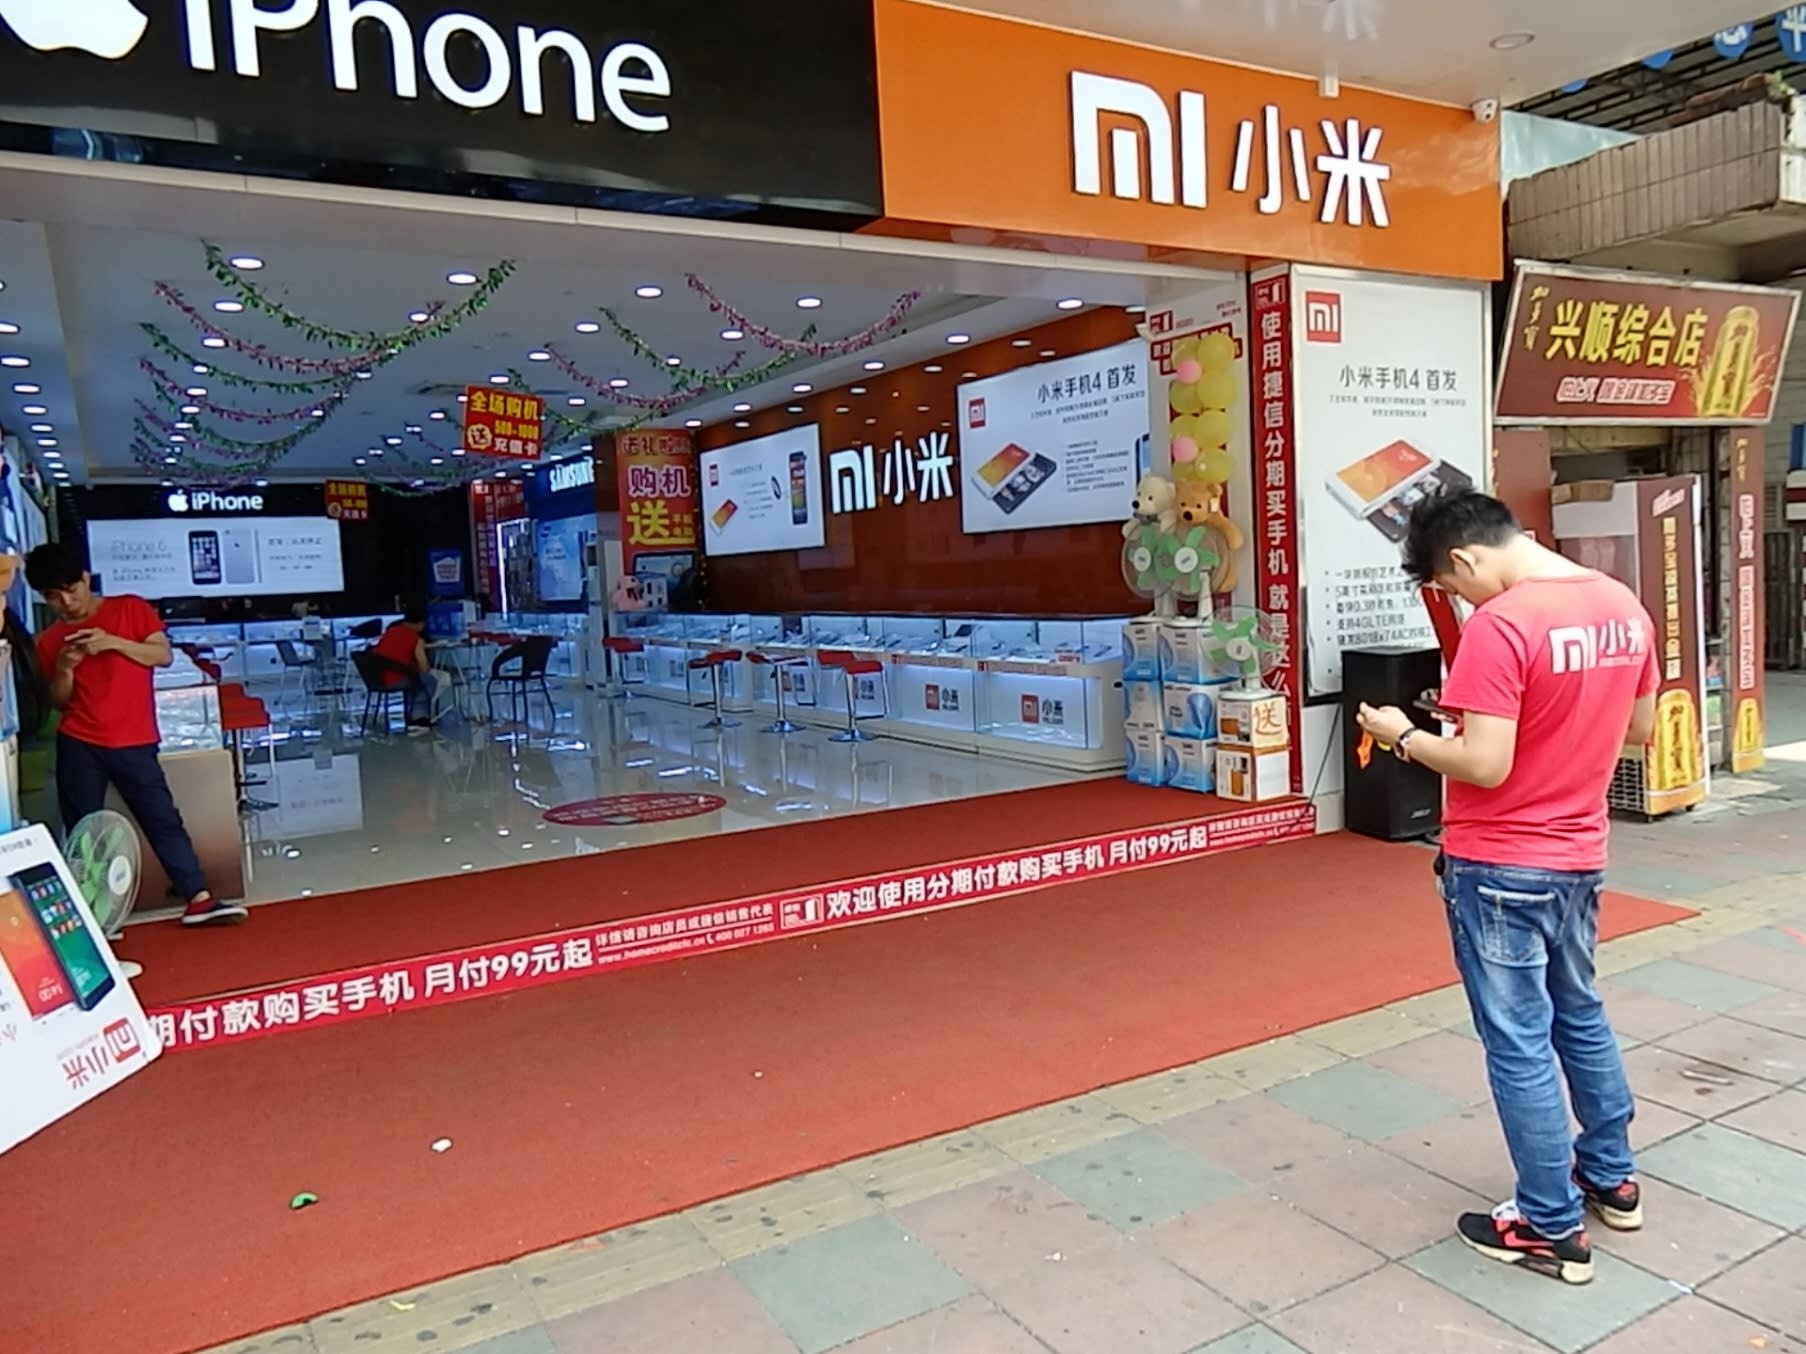 China's Xiaomi stumbling after branding missteps - Nikkei Asian Review